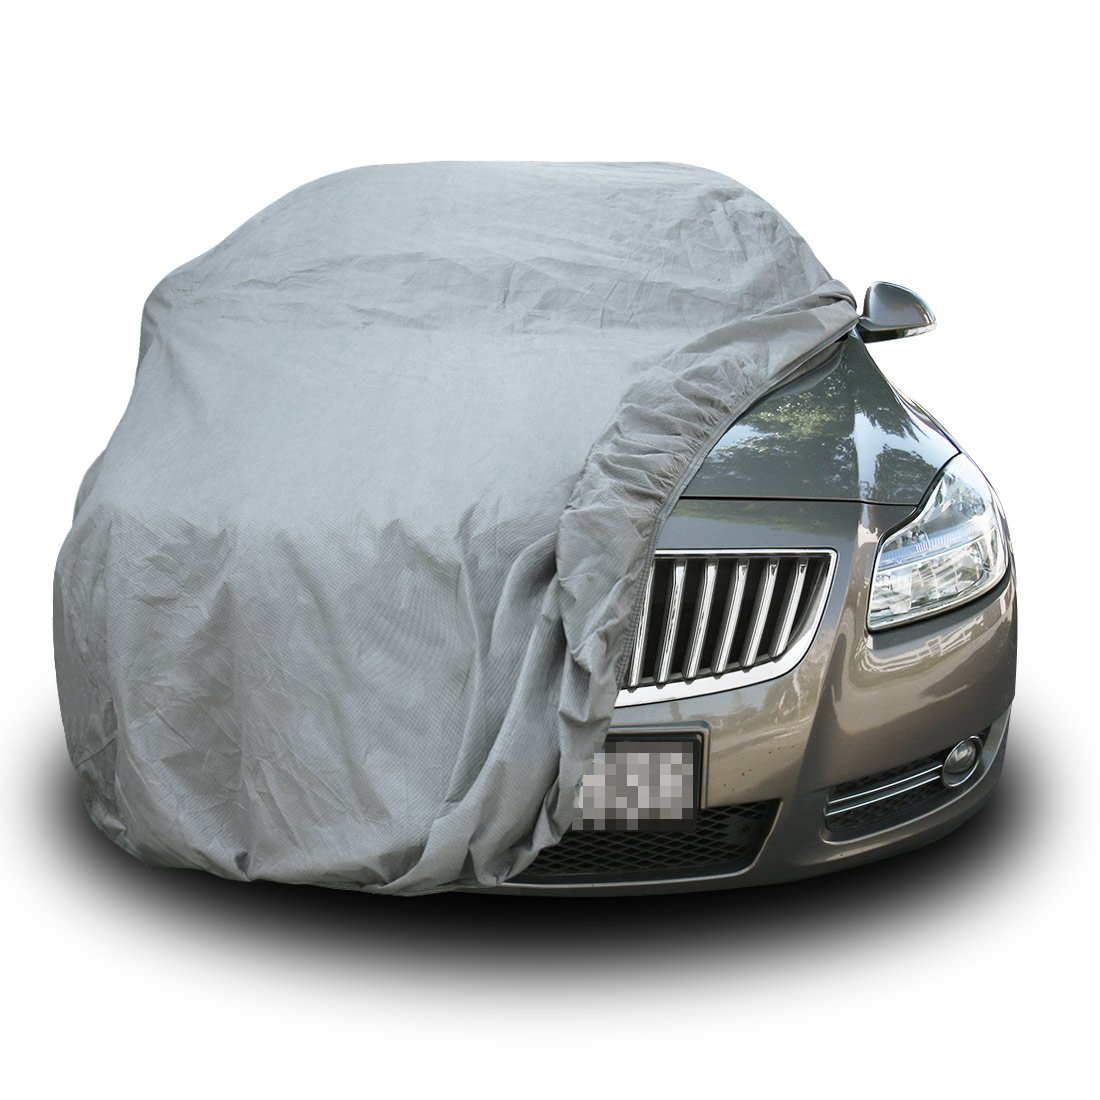 Copap Car Covers Nylon Universal Sedan Full Cover Size L Fits Sedans up to 170 inches, UV & Dust Proof Automart